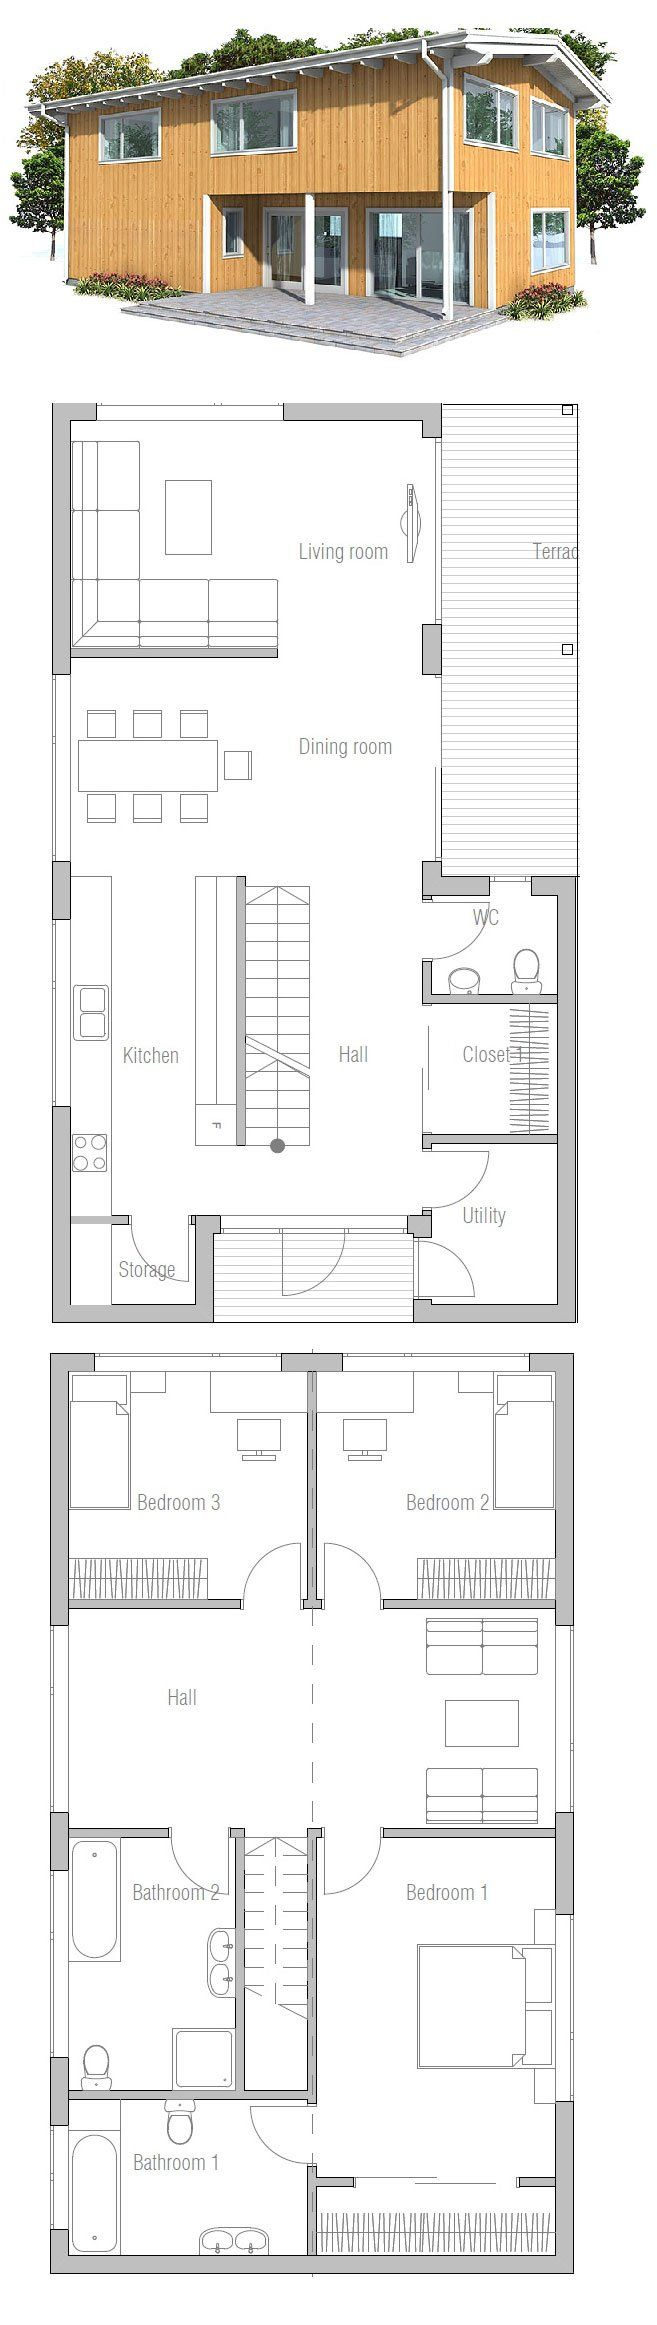 Small house plan. Suits well to small and narrow lots. Small home design with affordable building budget.